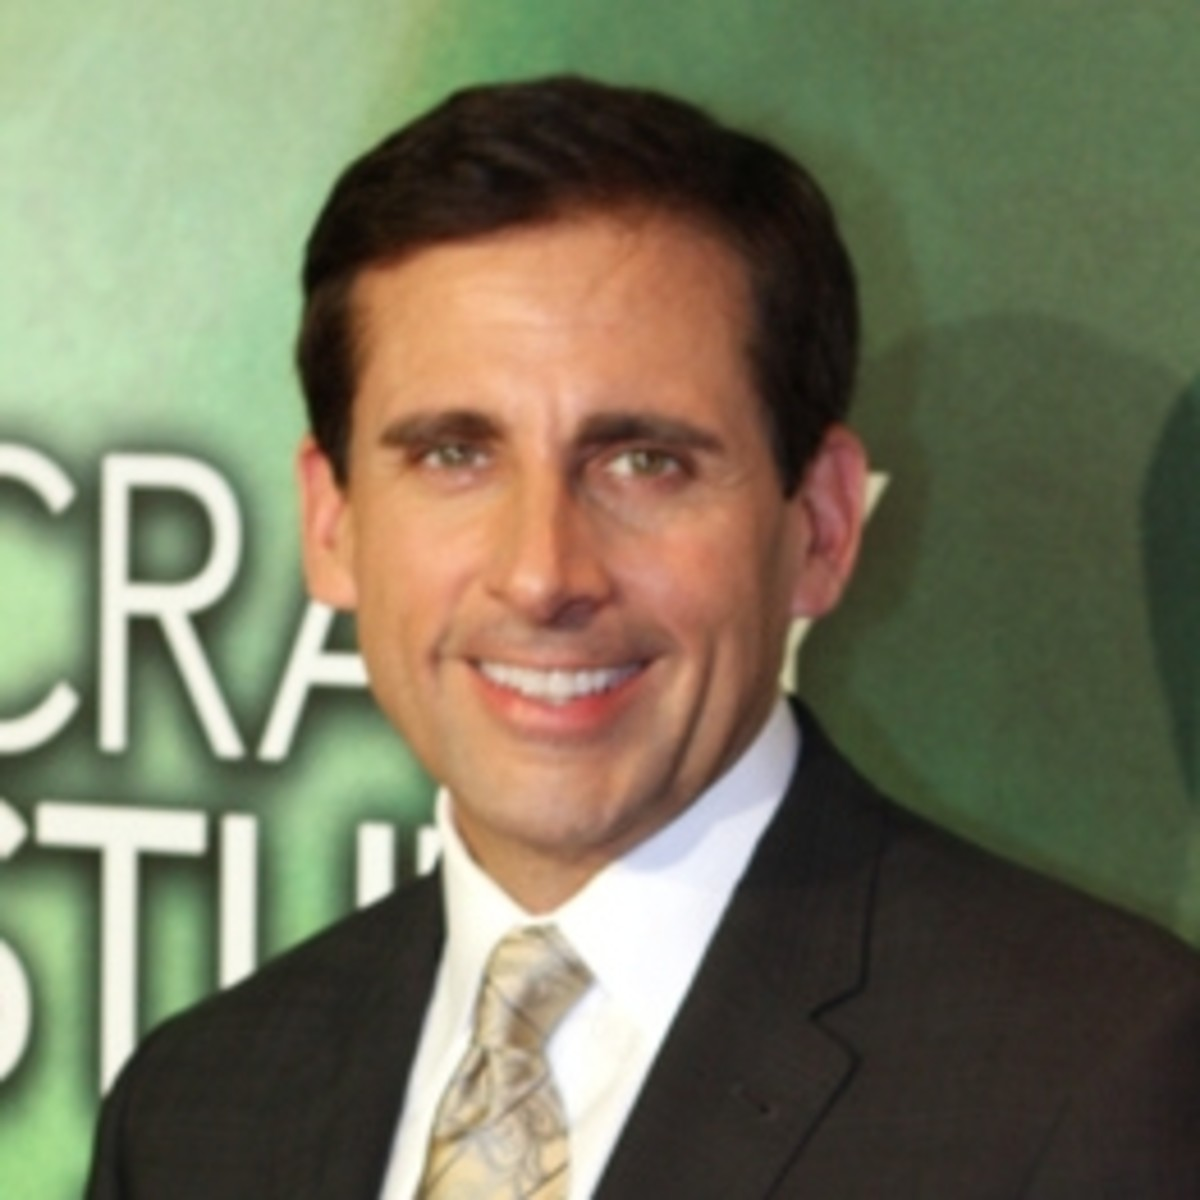 Steve Carell, married since 1995